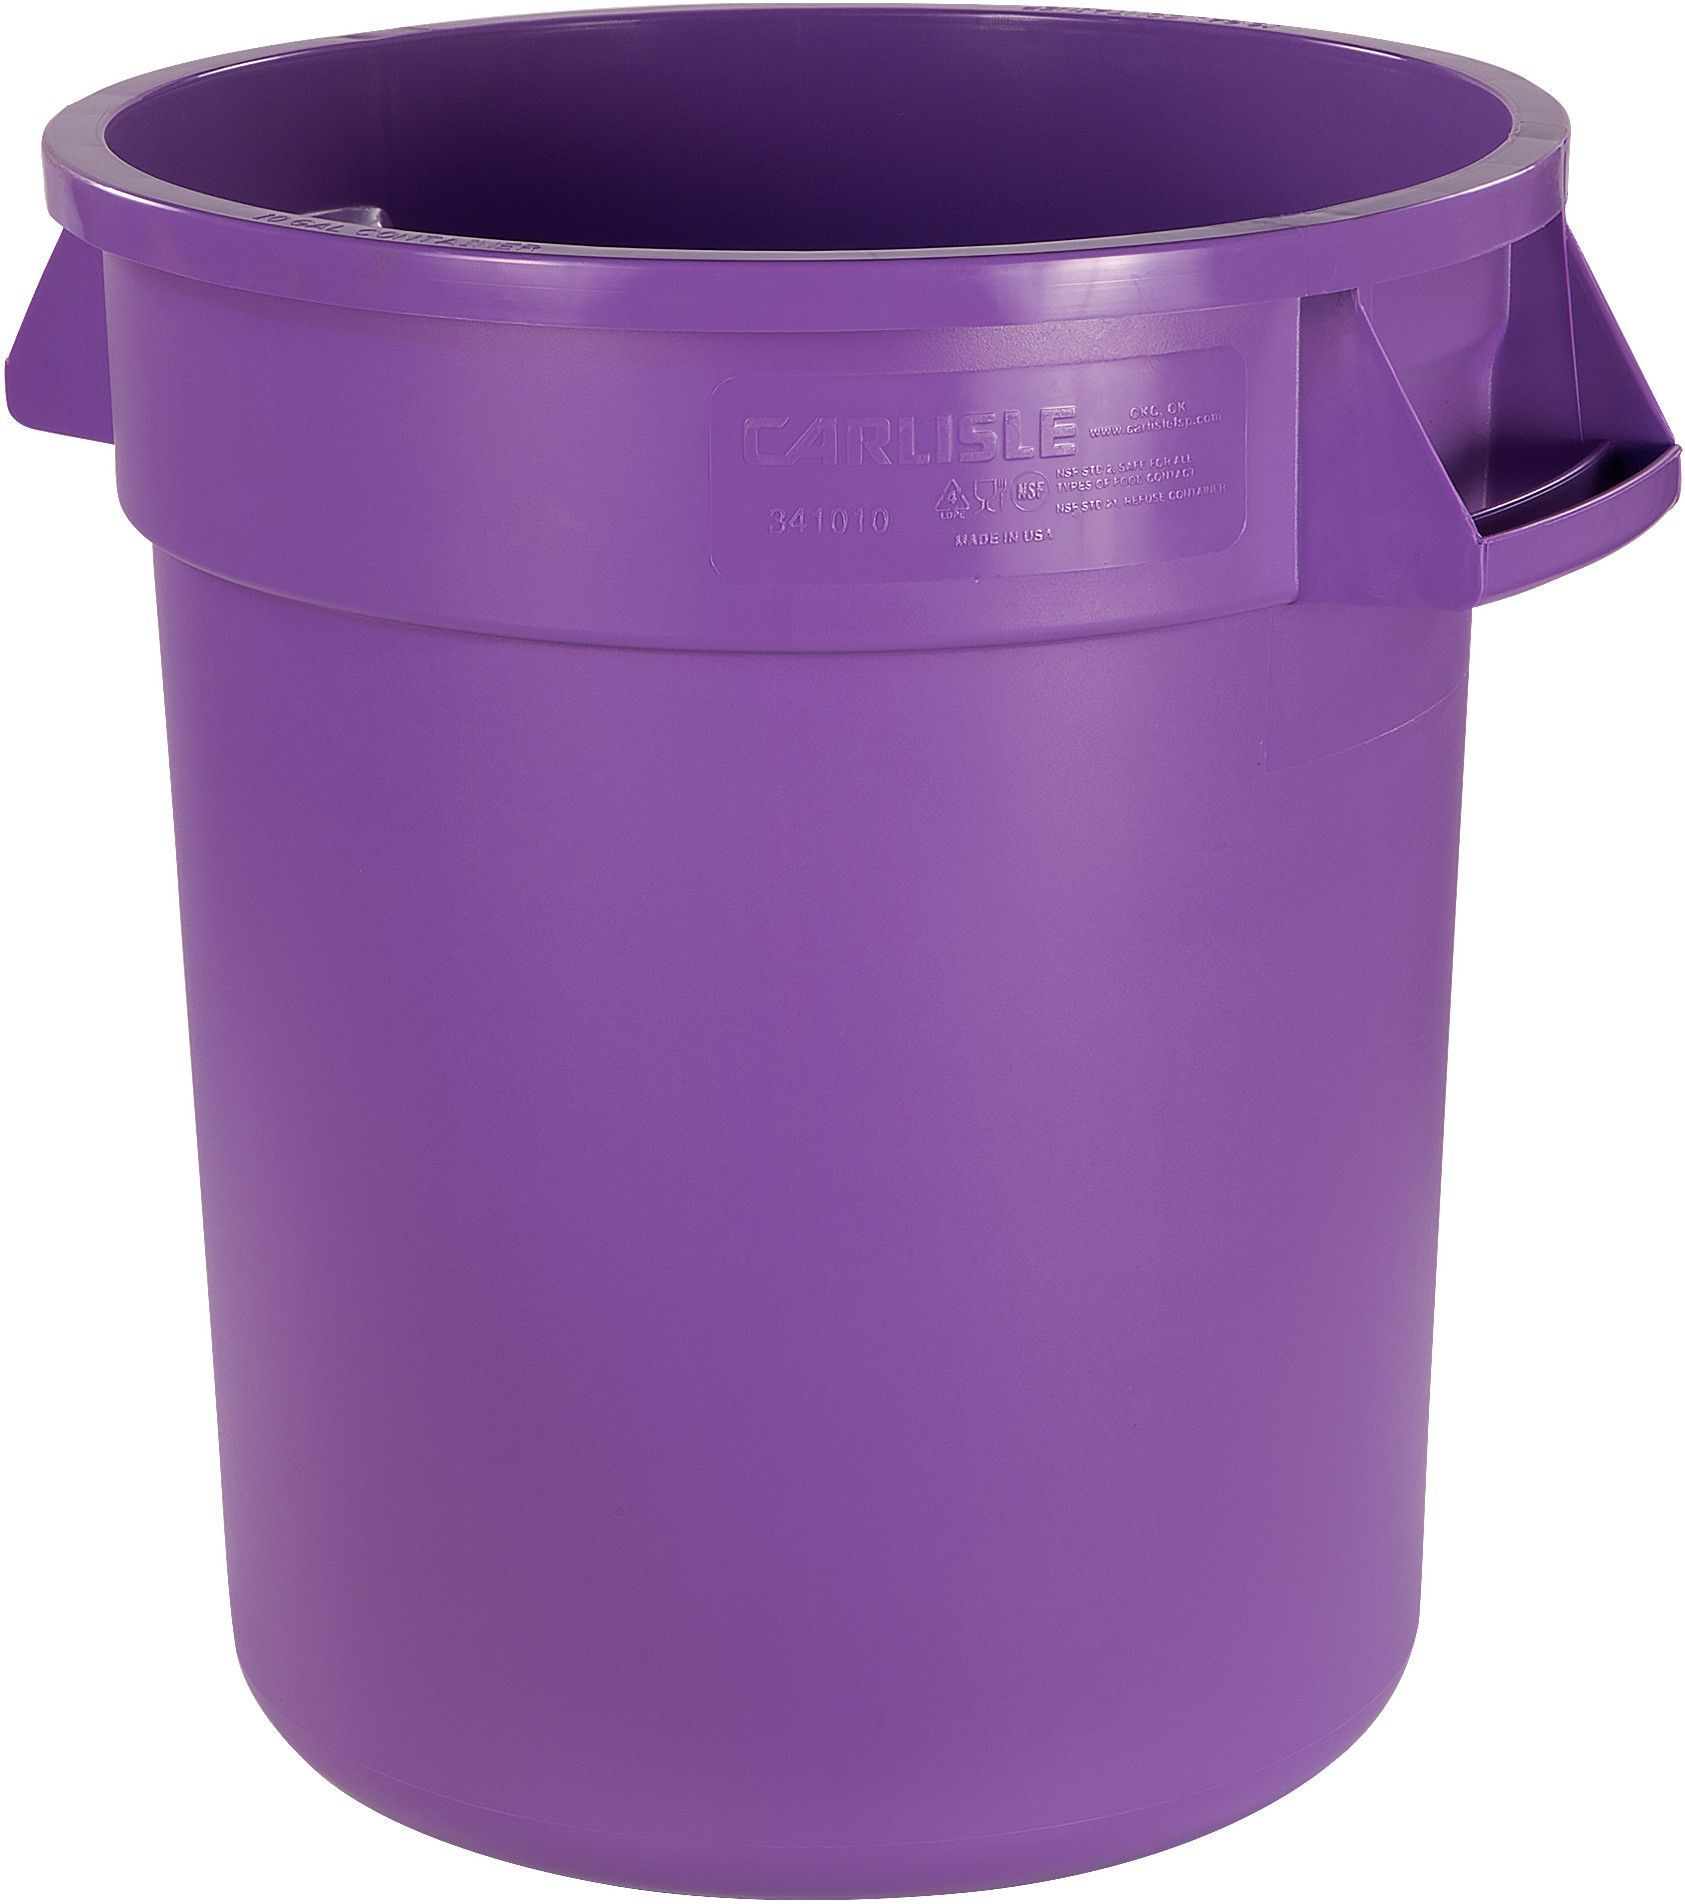 Bronco™ 10 Gallon Waste Container (Set of 6)